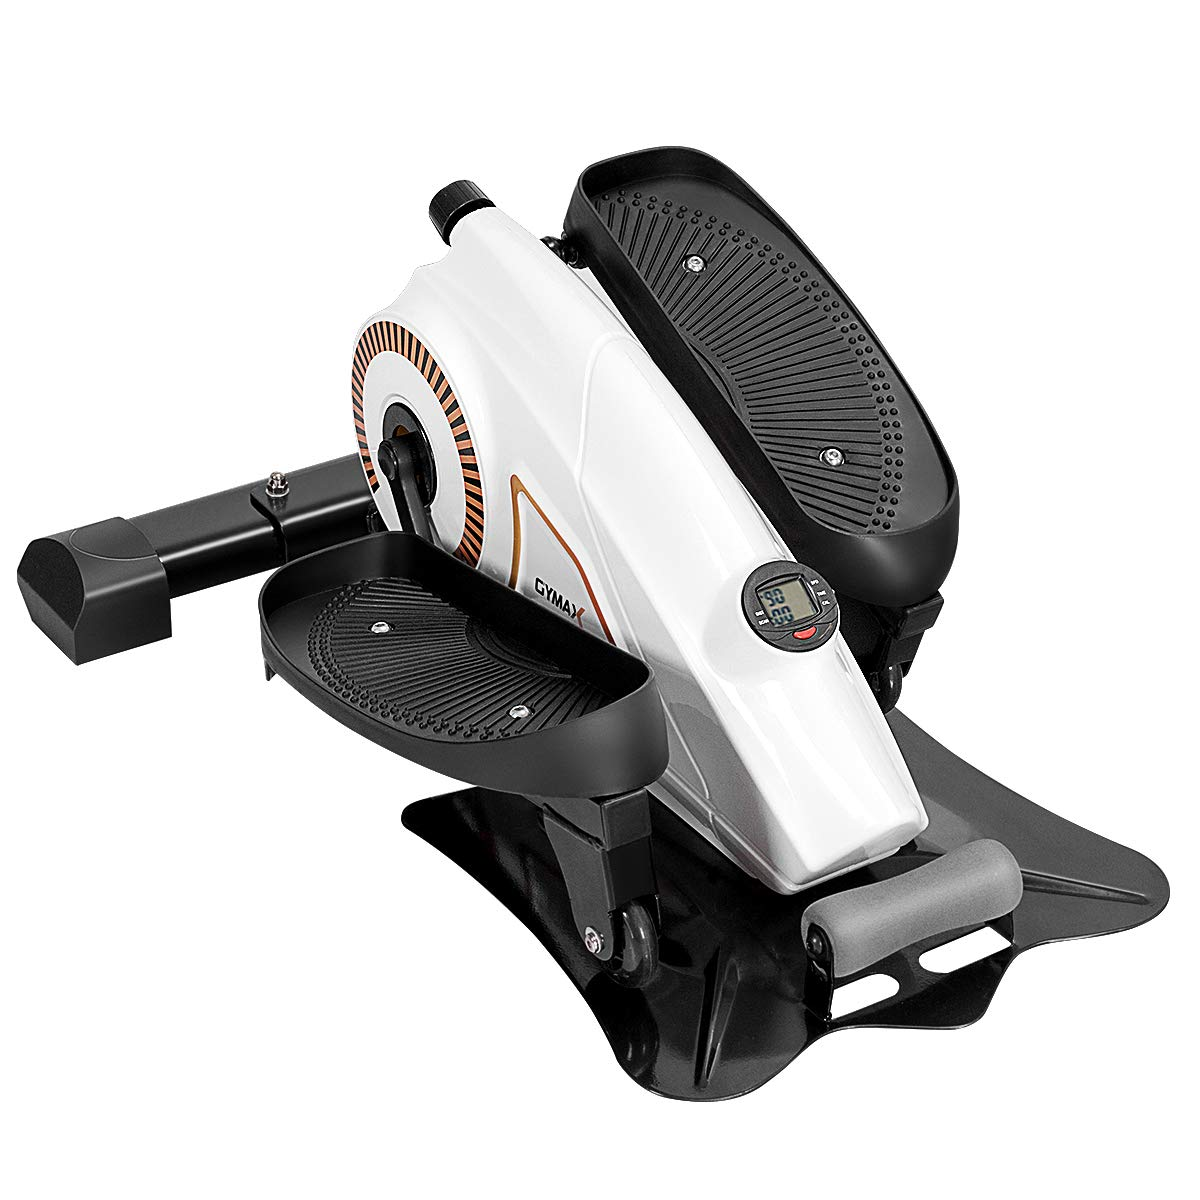 Goplus Under Desk Elliptical Stepper, Resistance Adjustable, More Stable with Heavier Weight, 2 in1 Design, Portable Mini Magnetic Step Machine, Compact Strider by Goplus